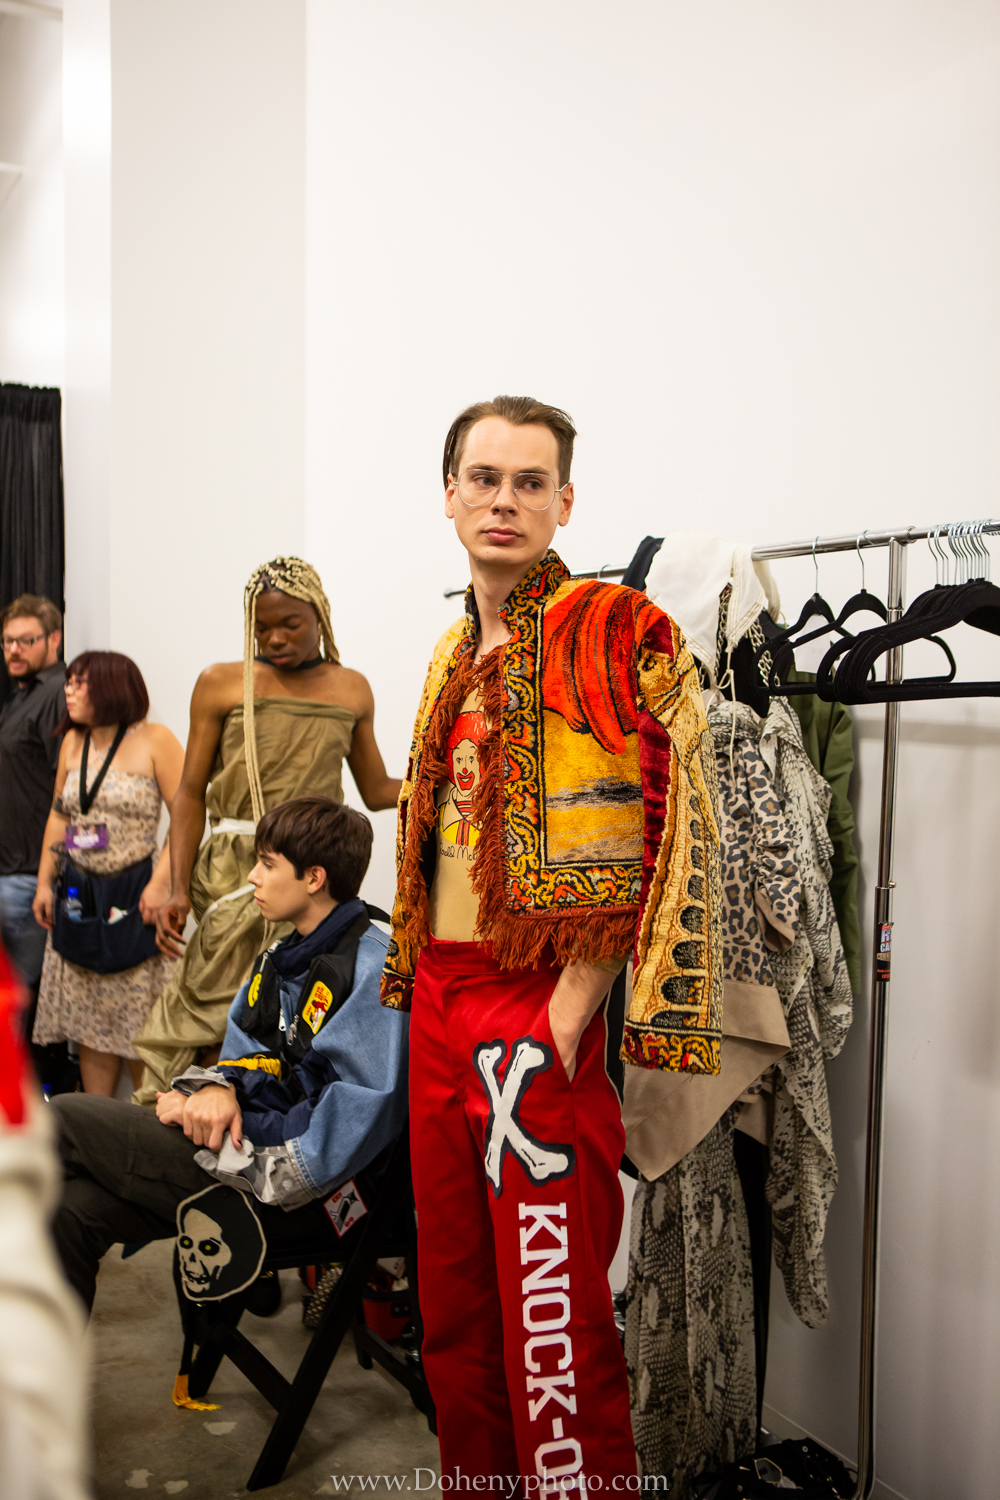 bohemian_society_LA_Fashion_week_Dohenyphoto-4098.jpg